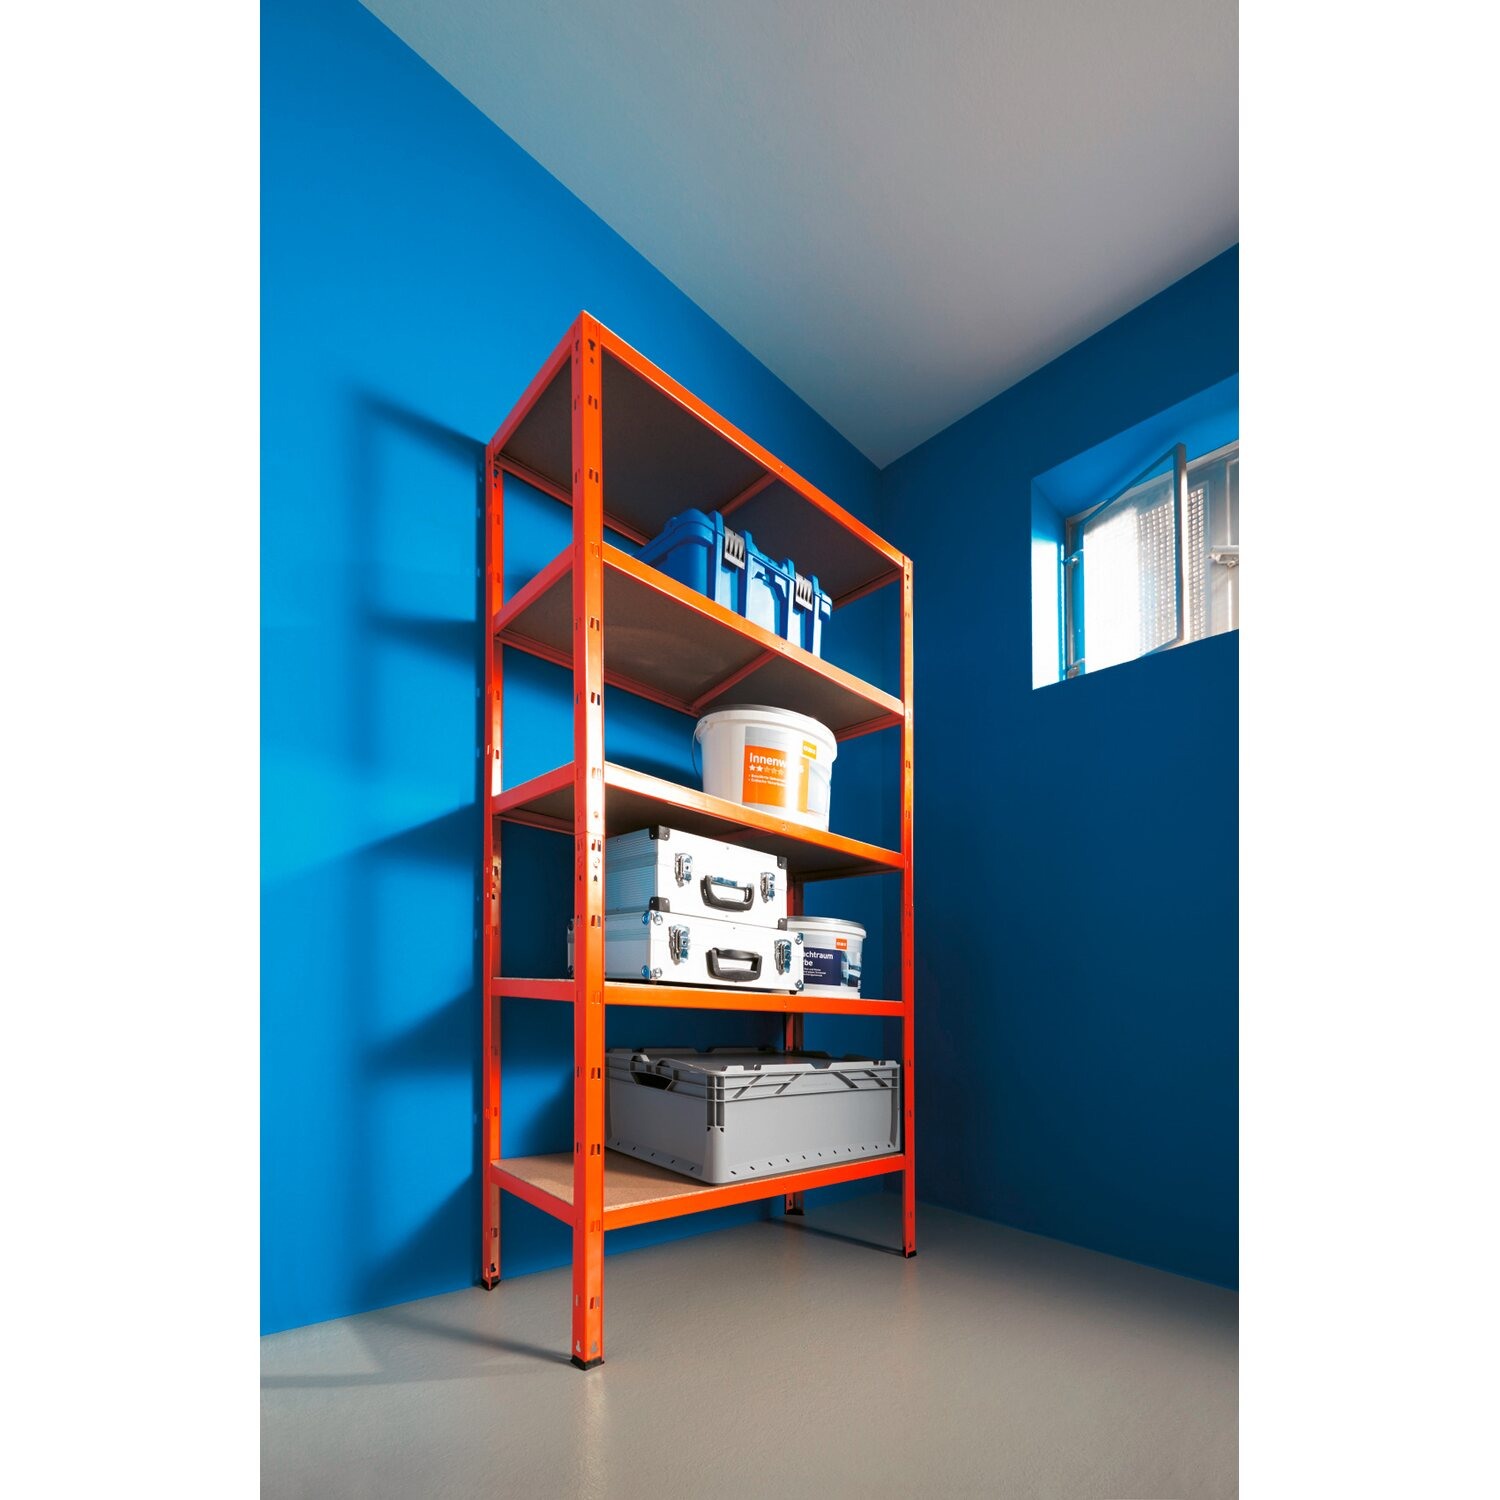 metall schwerlast steckregal orange 180 cm x 90 cm x 40 cm kaufen bei obi. Black Bedroom Furniture Sets. Home Design Ideas